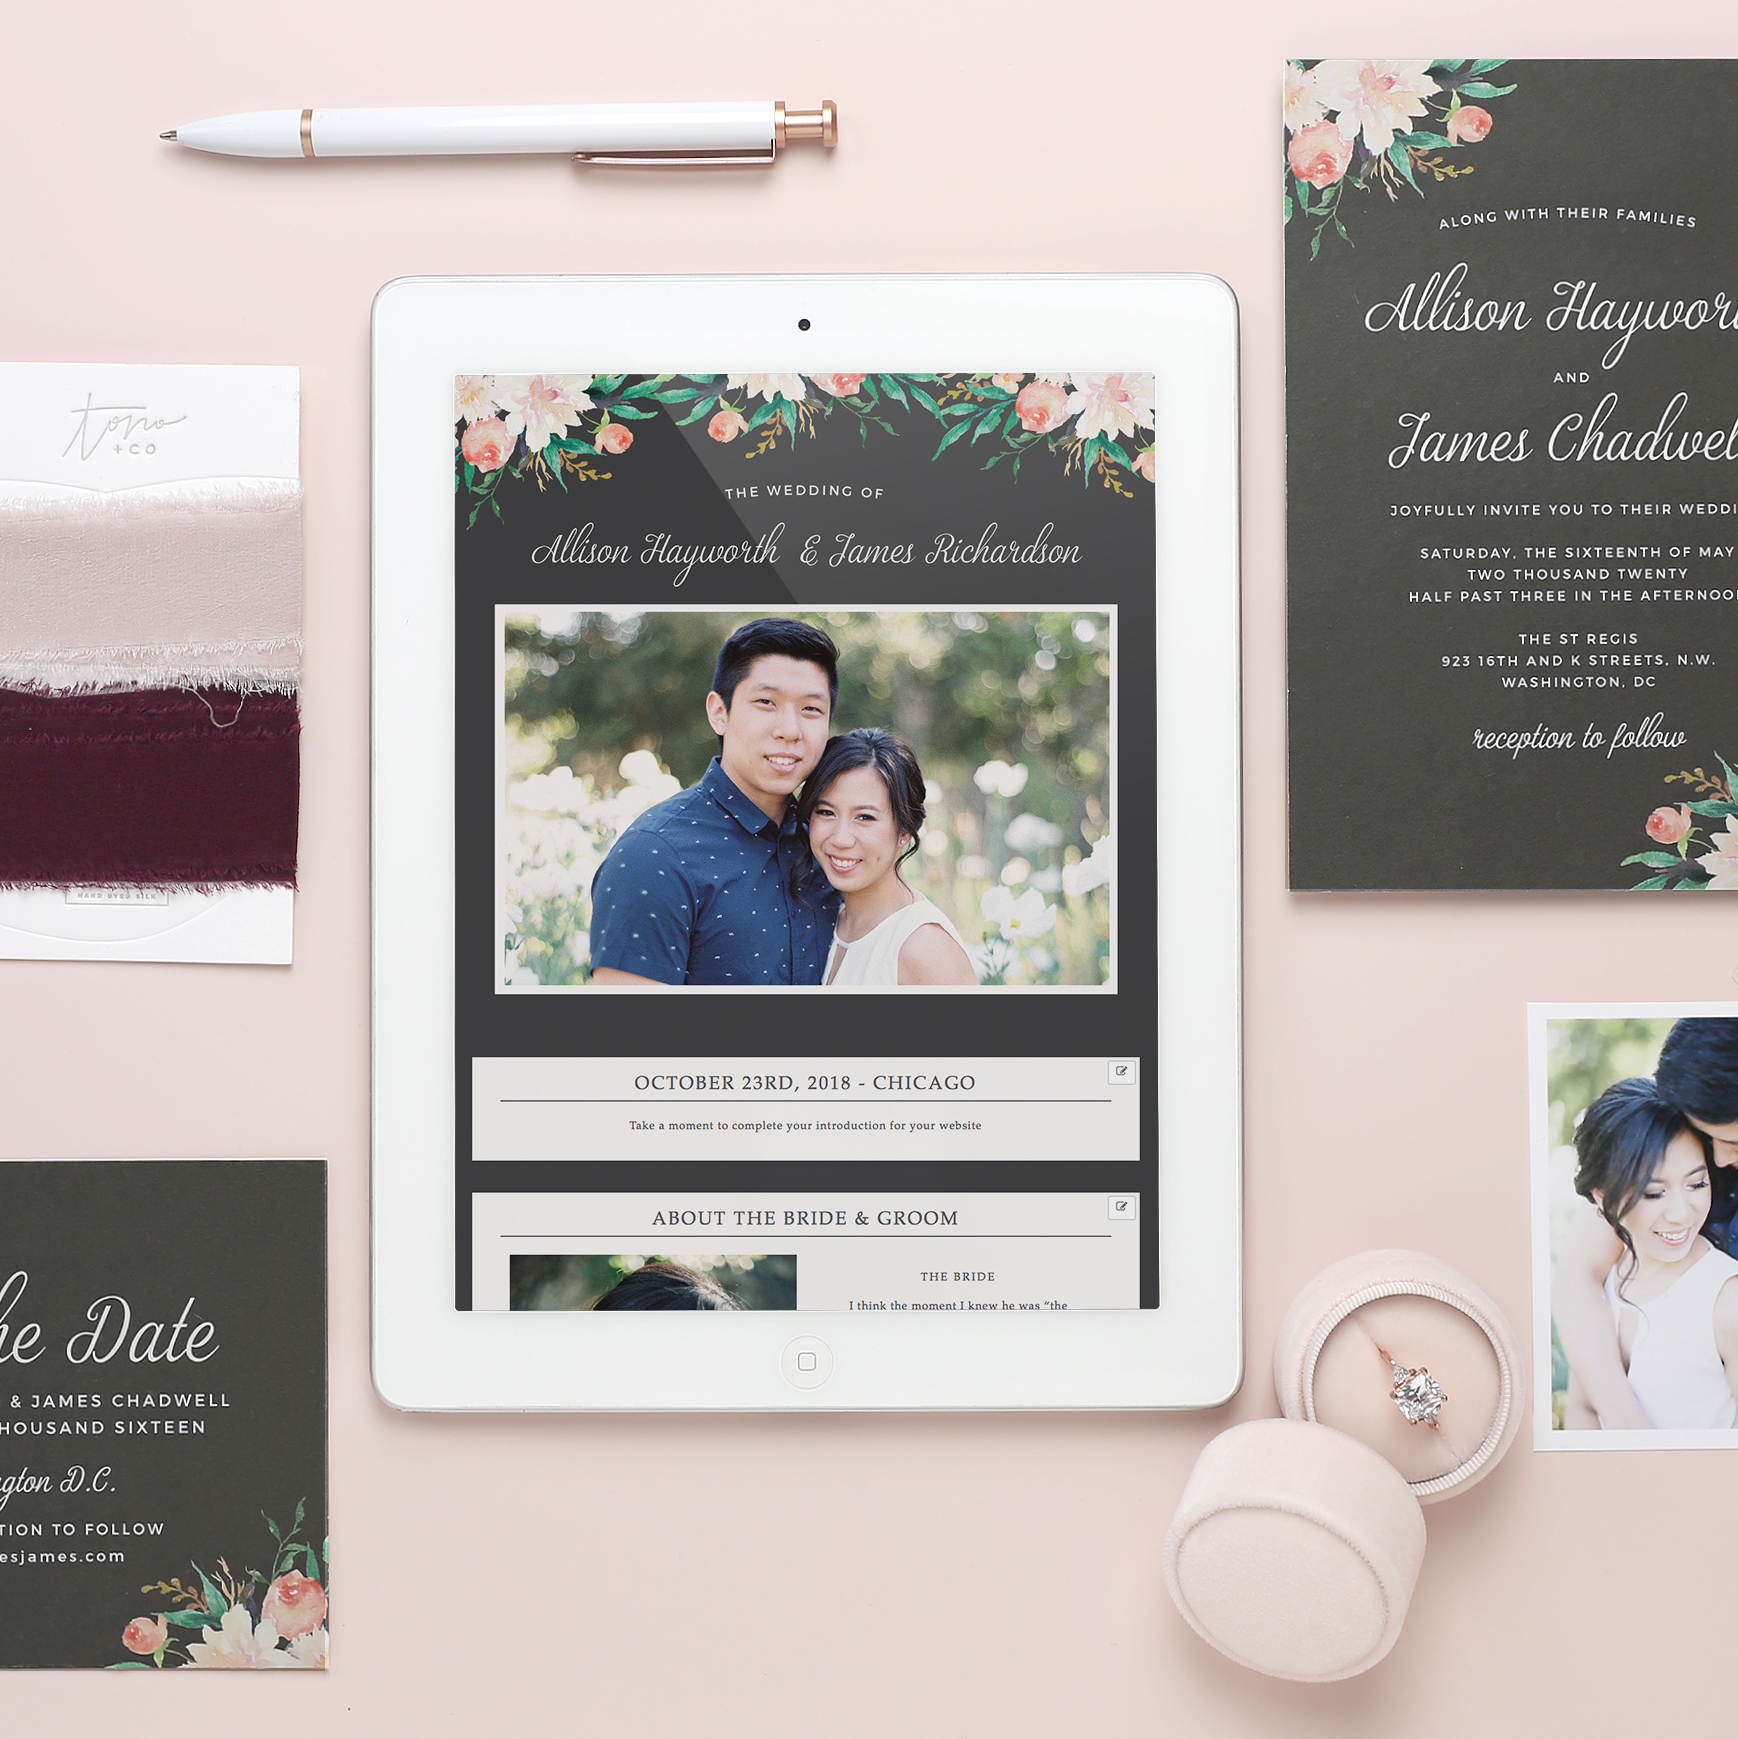 basic invite wedding websites 2